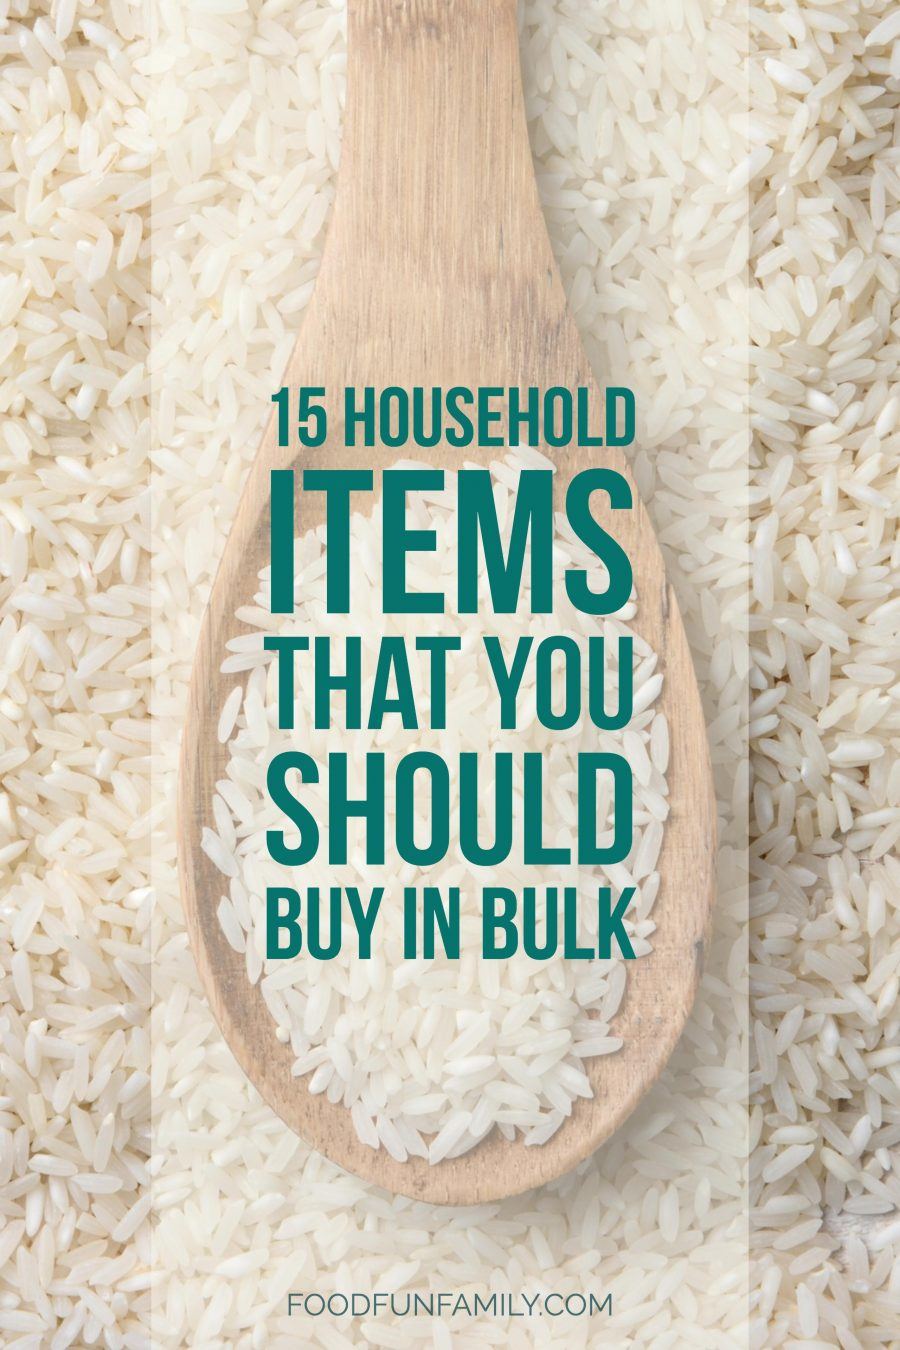 15 household items that you should buy in bulk, from pantry staples to household supplies - and tips on things that you should not stock up on!